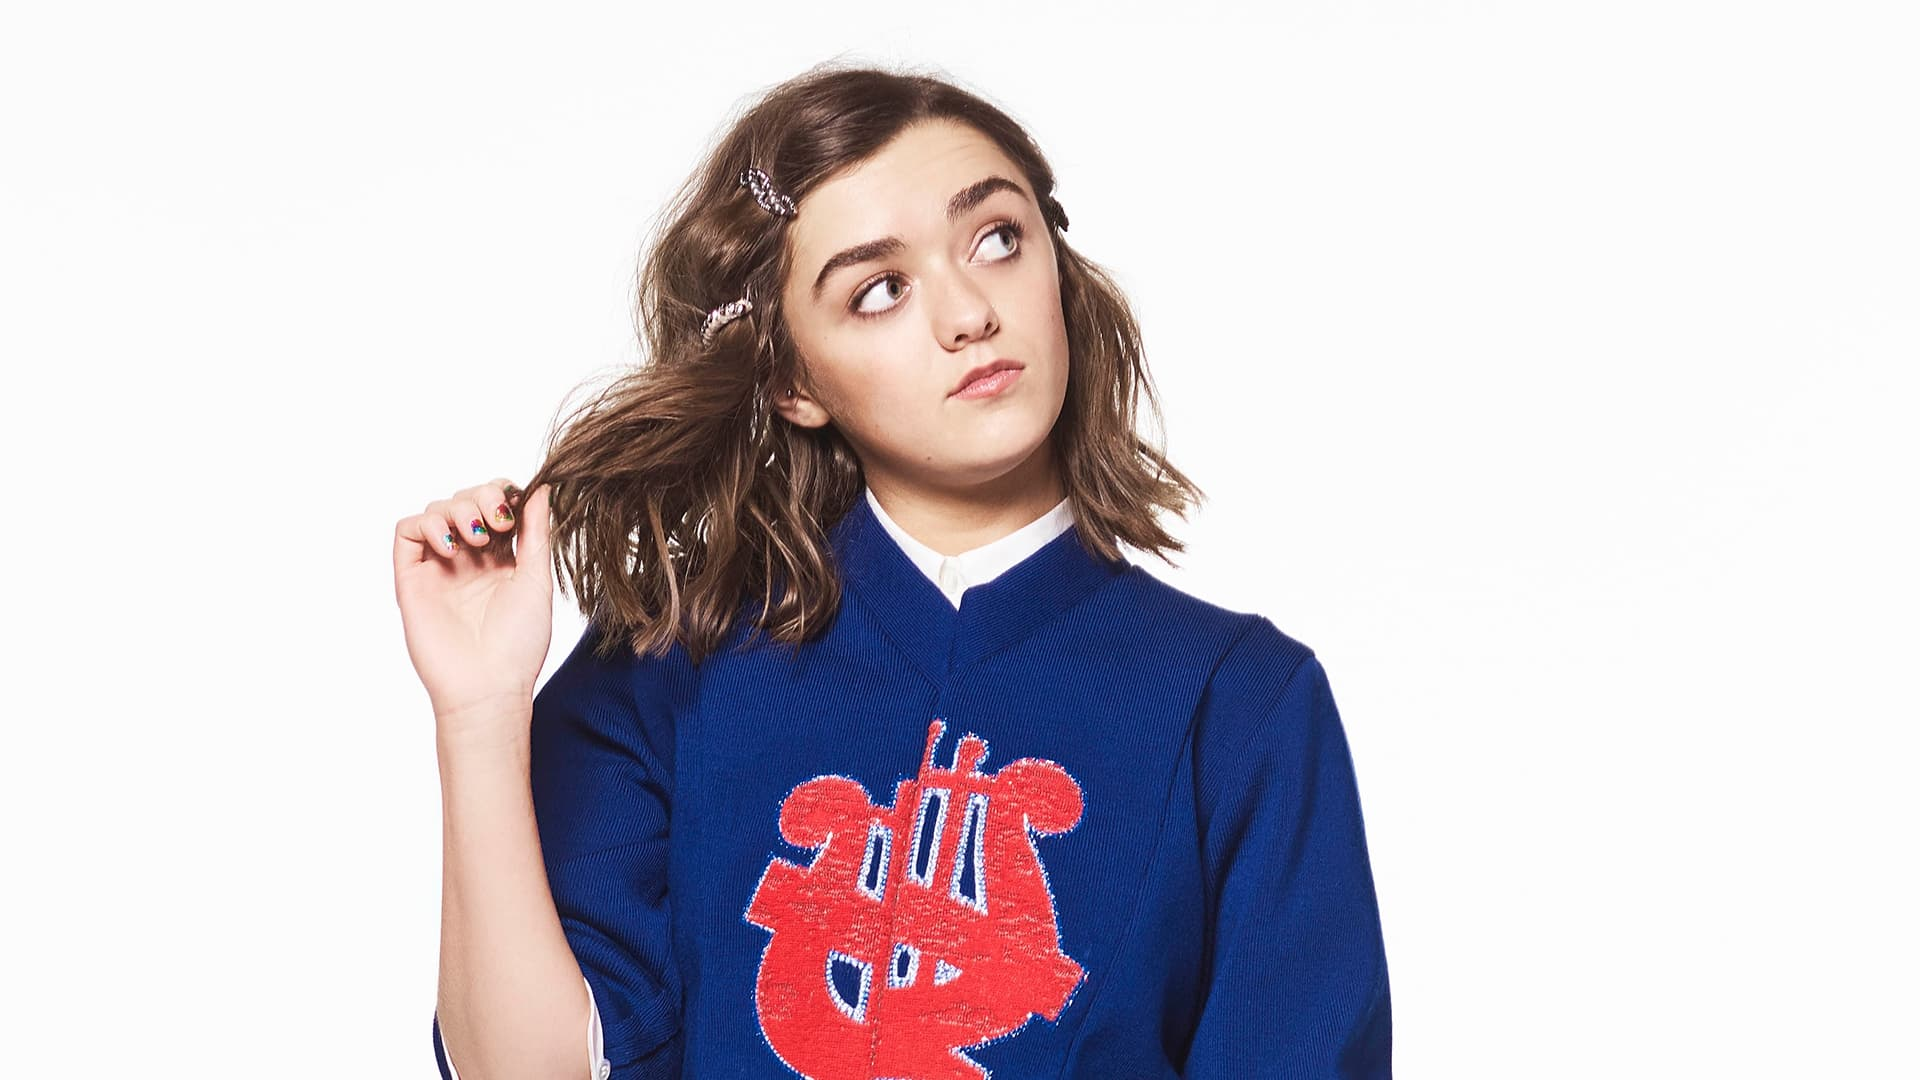 Maisie Williams Wallpaper 8   1920 X 1080 stmednet 1920x1080